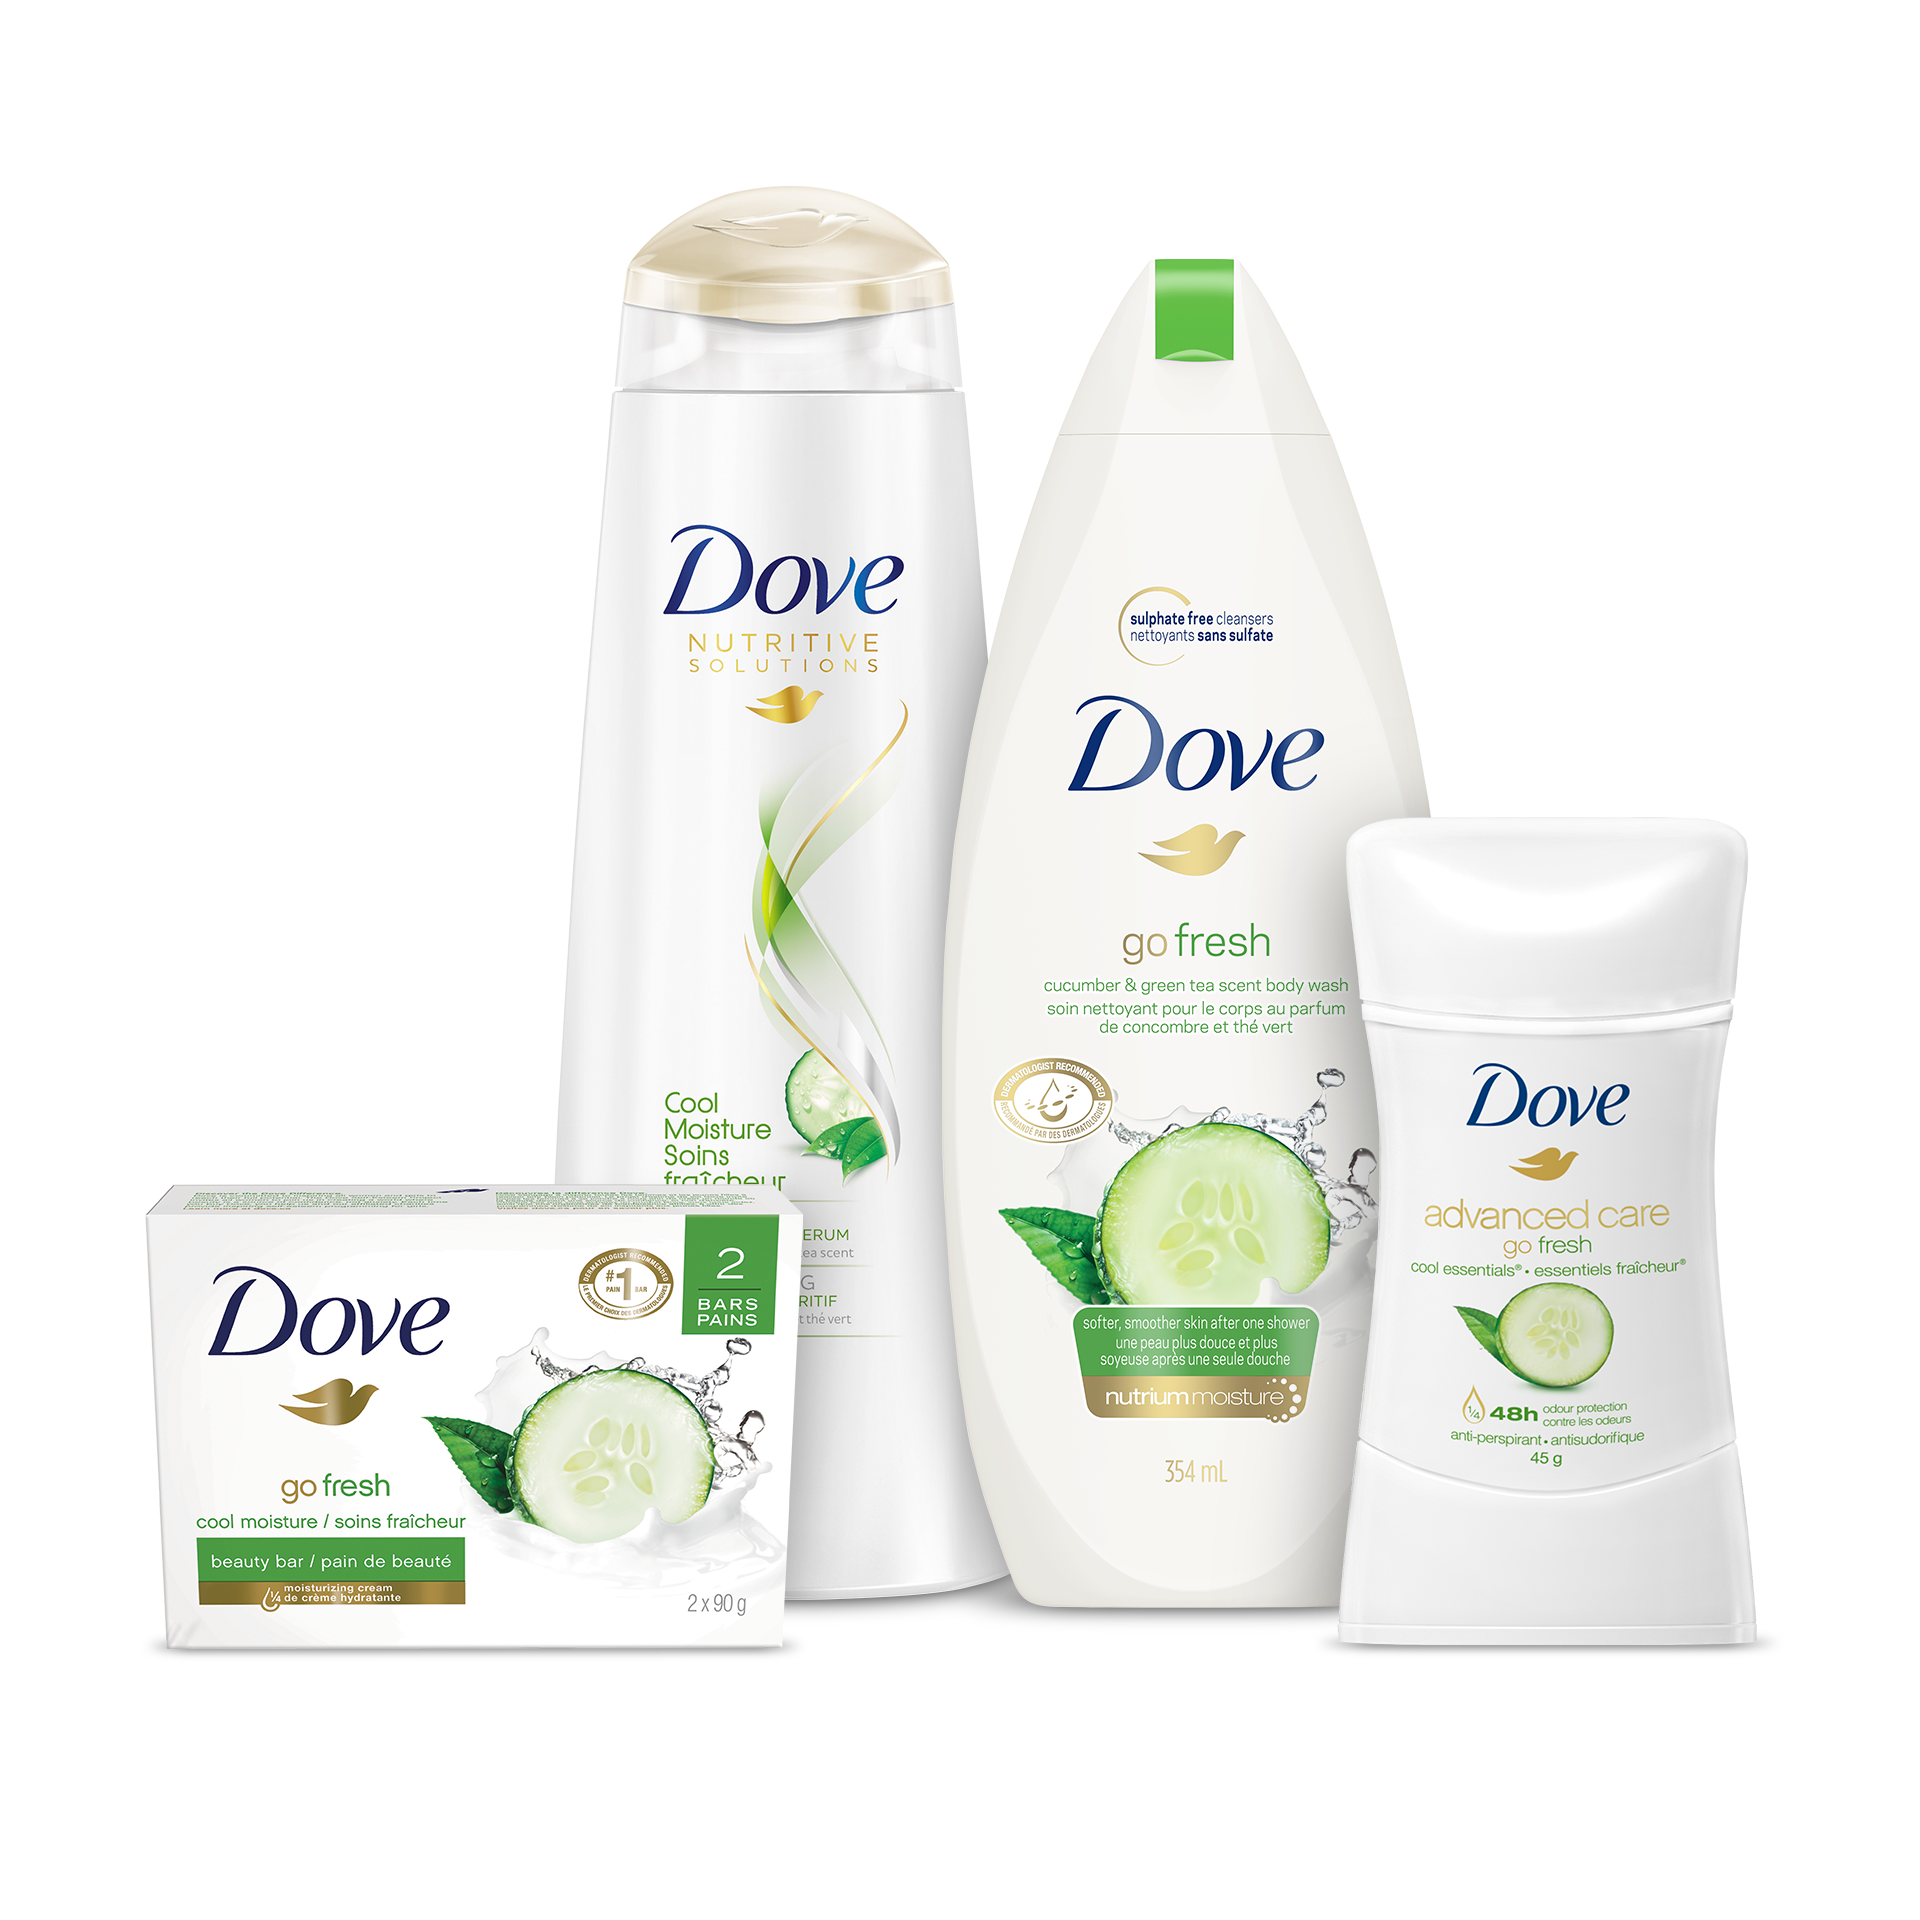 Discover Go Fresh Our Refreshing Skin Care Products Dove